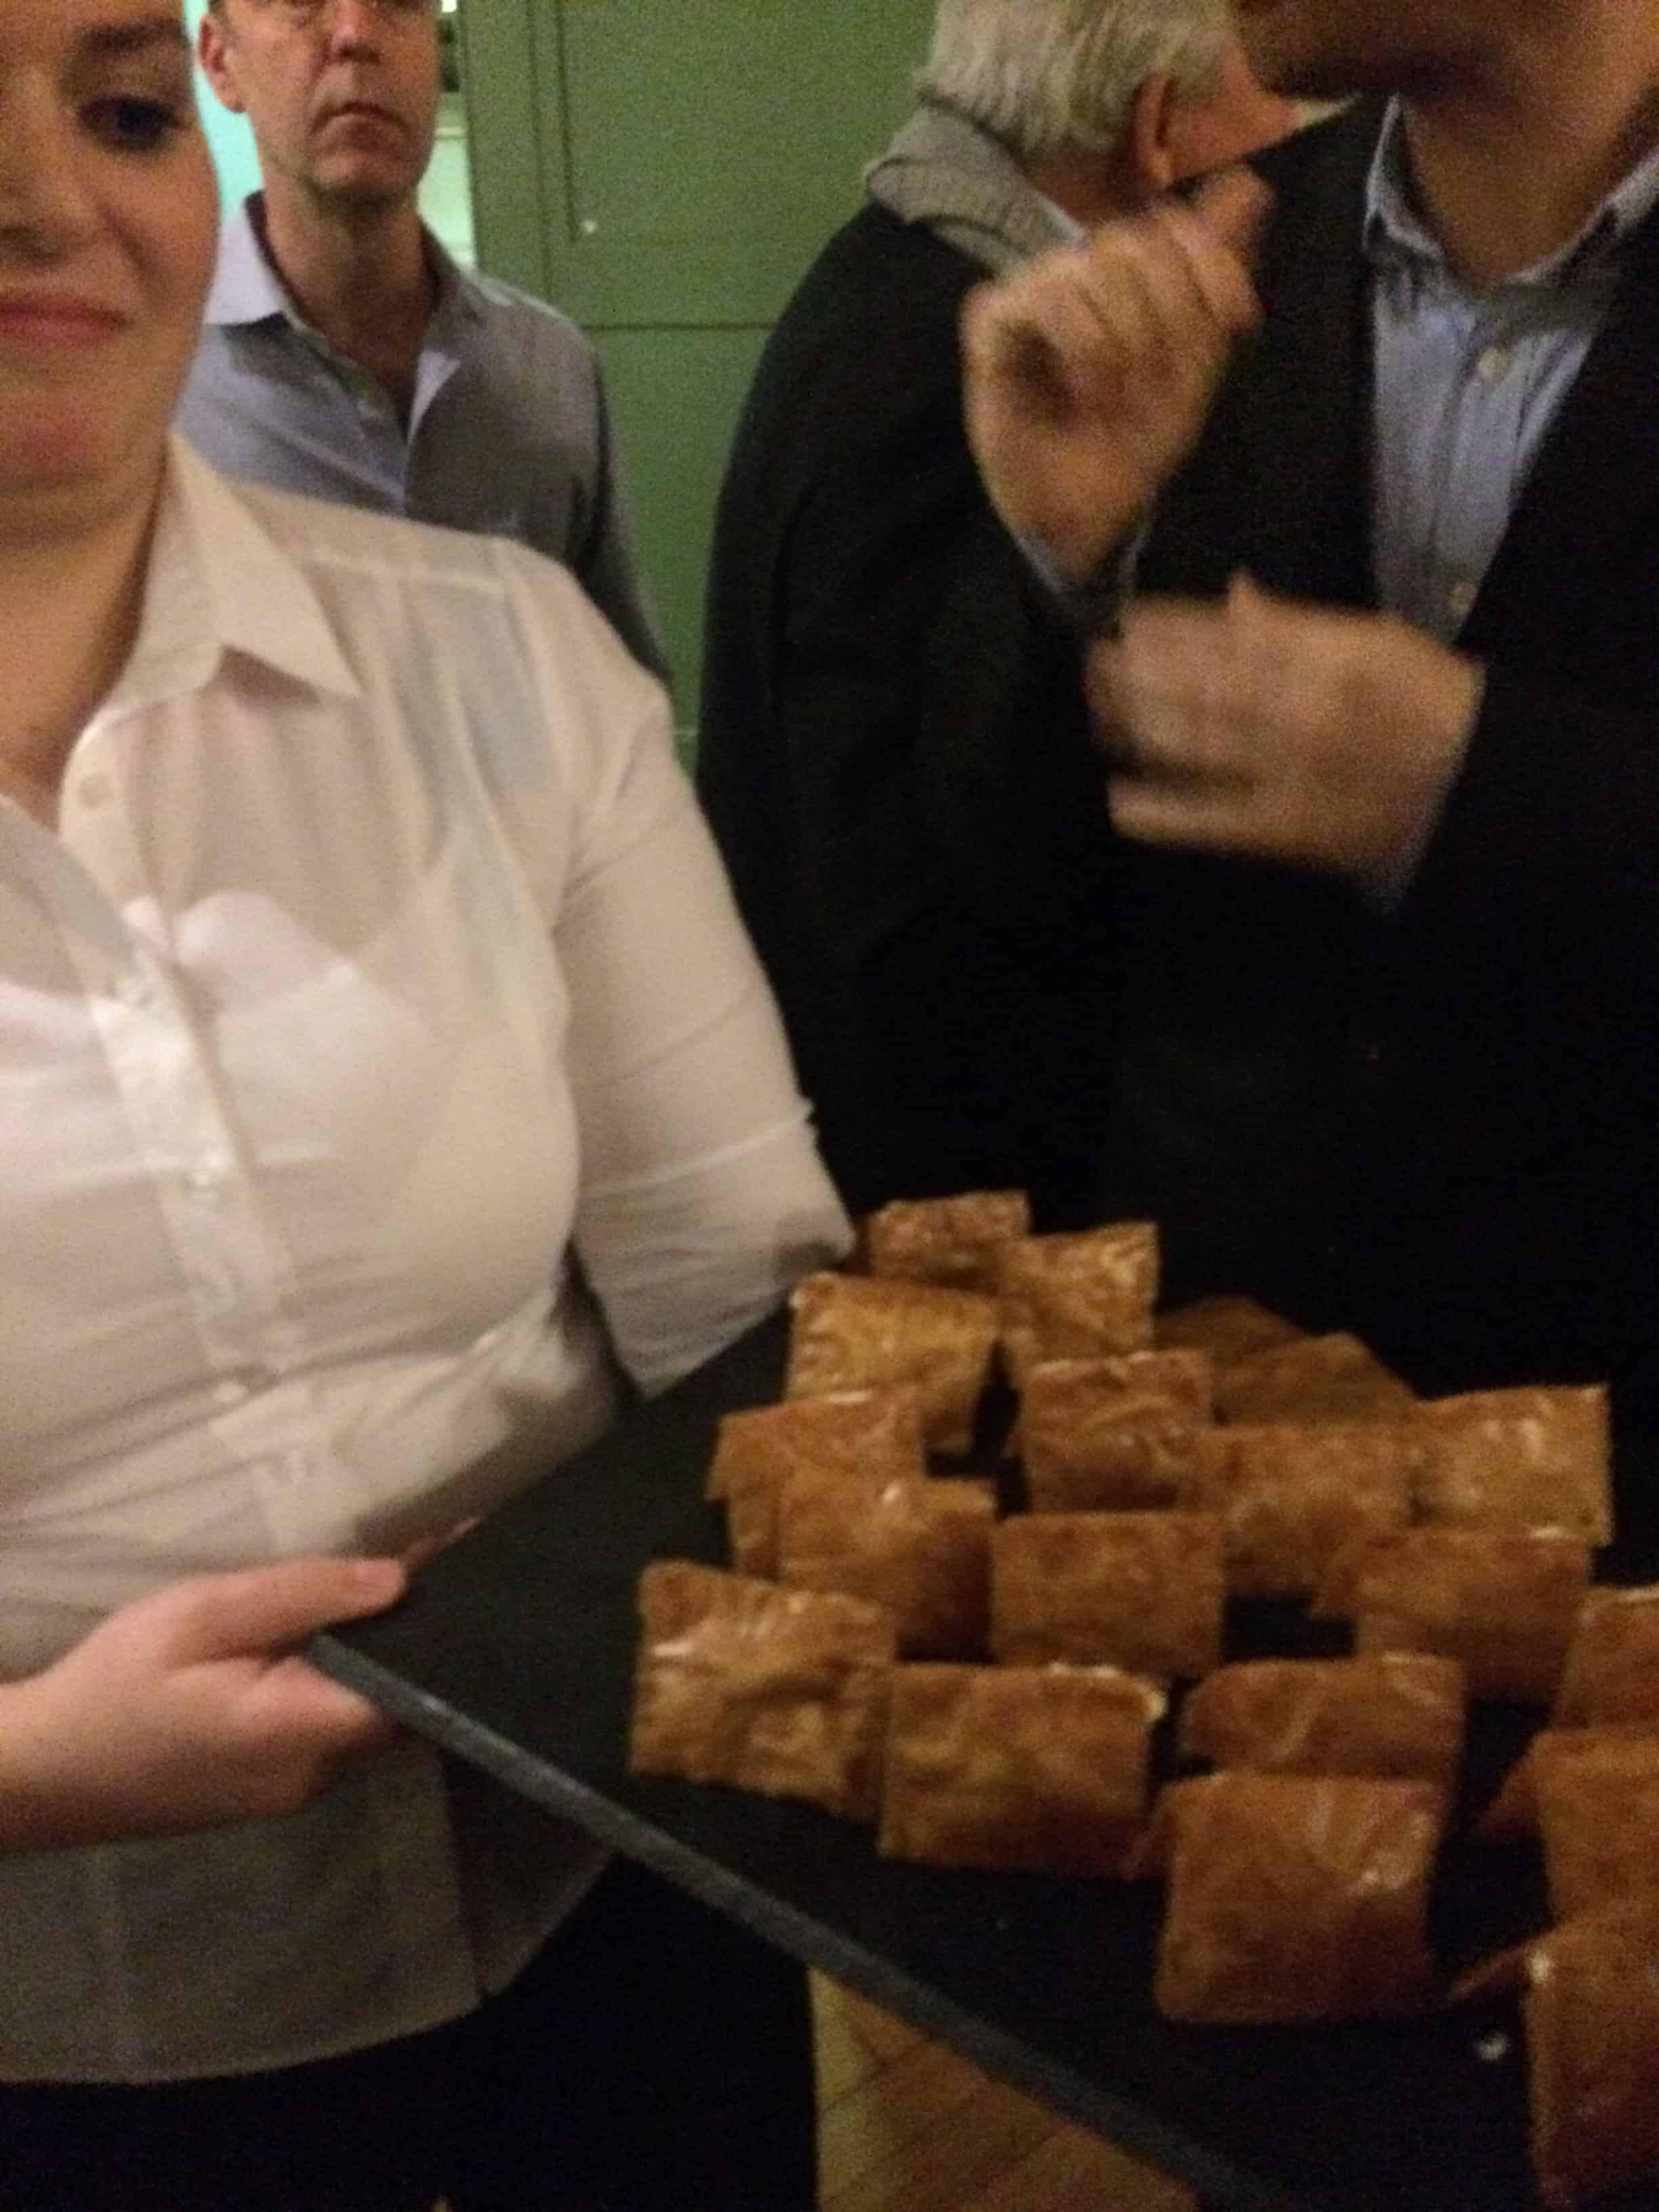 Crujiente de quesos: Toffee flavoured filo pastry with Spanish cheeses